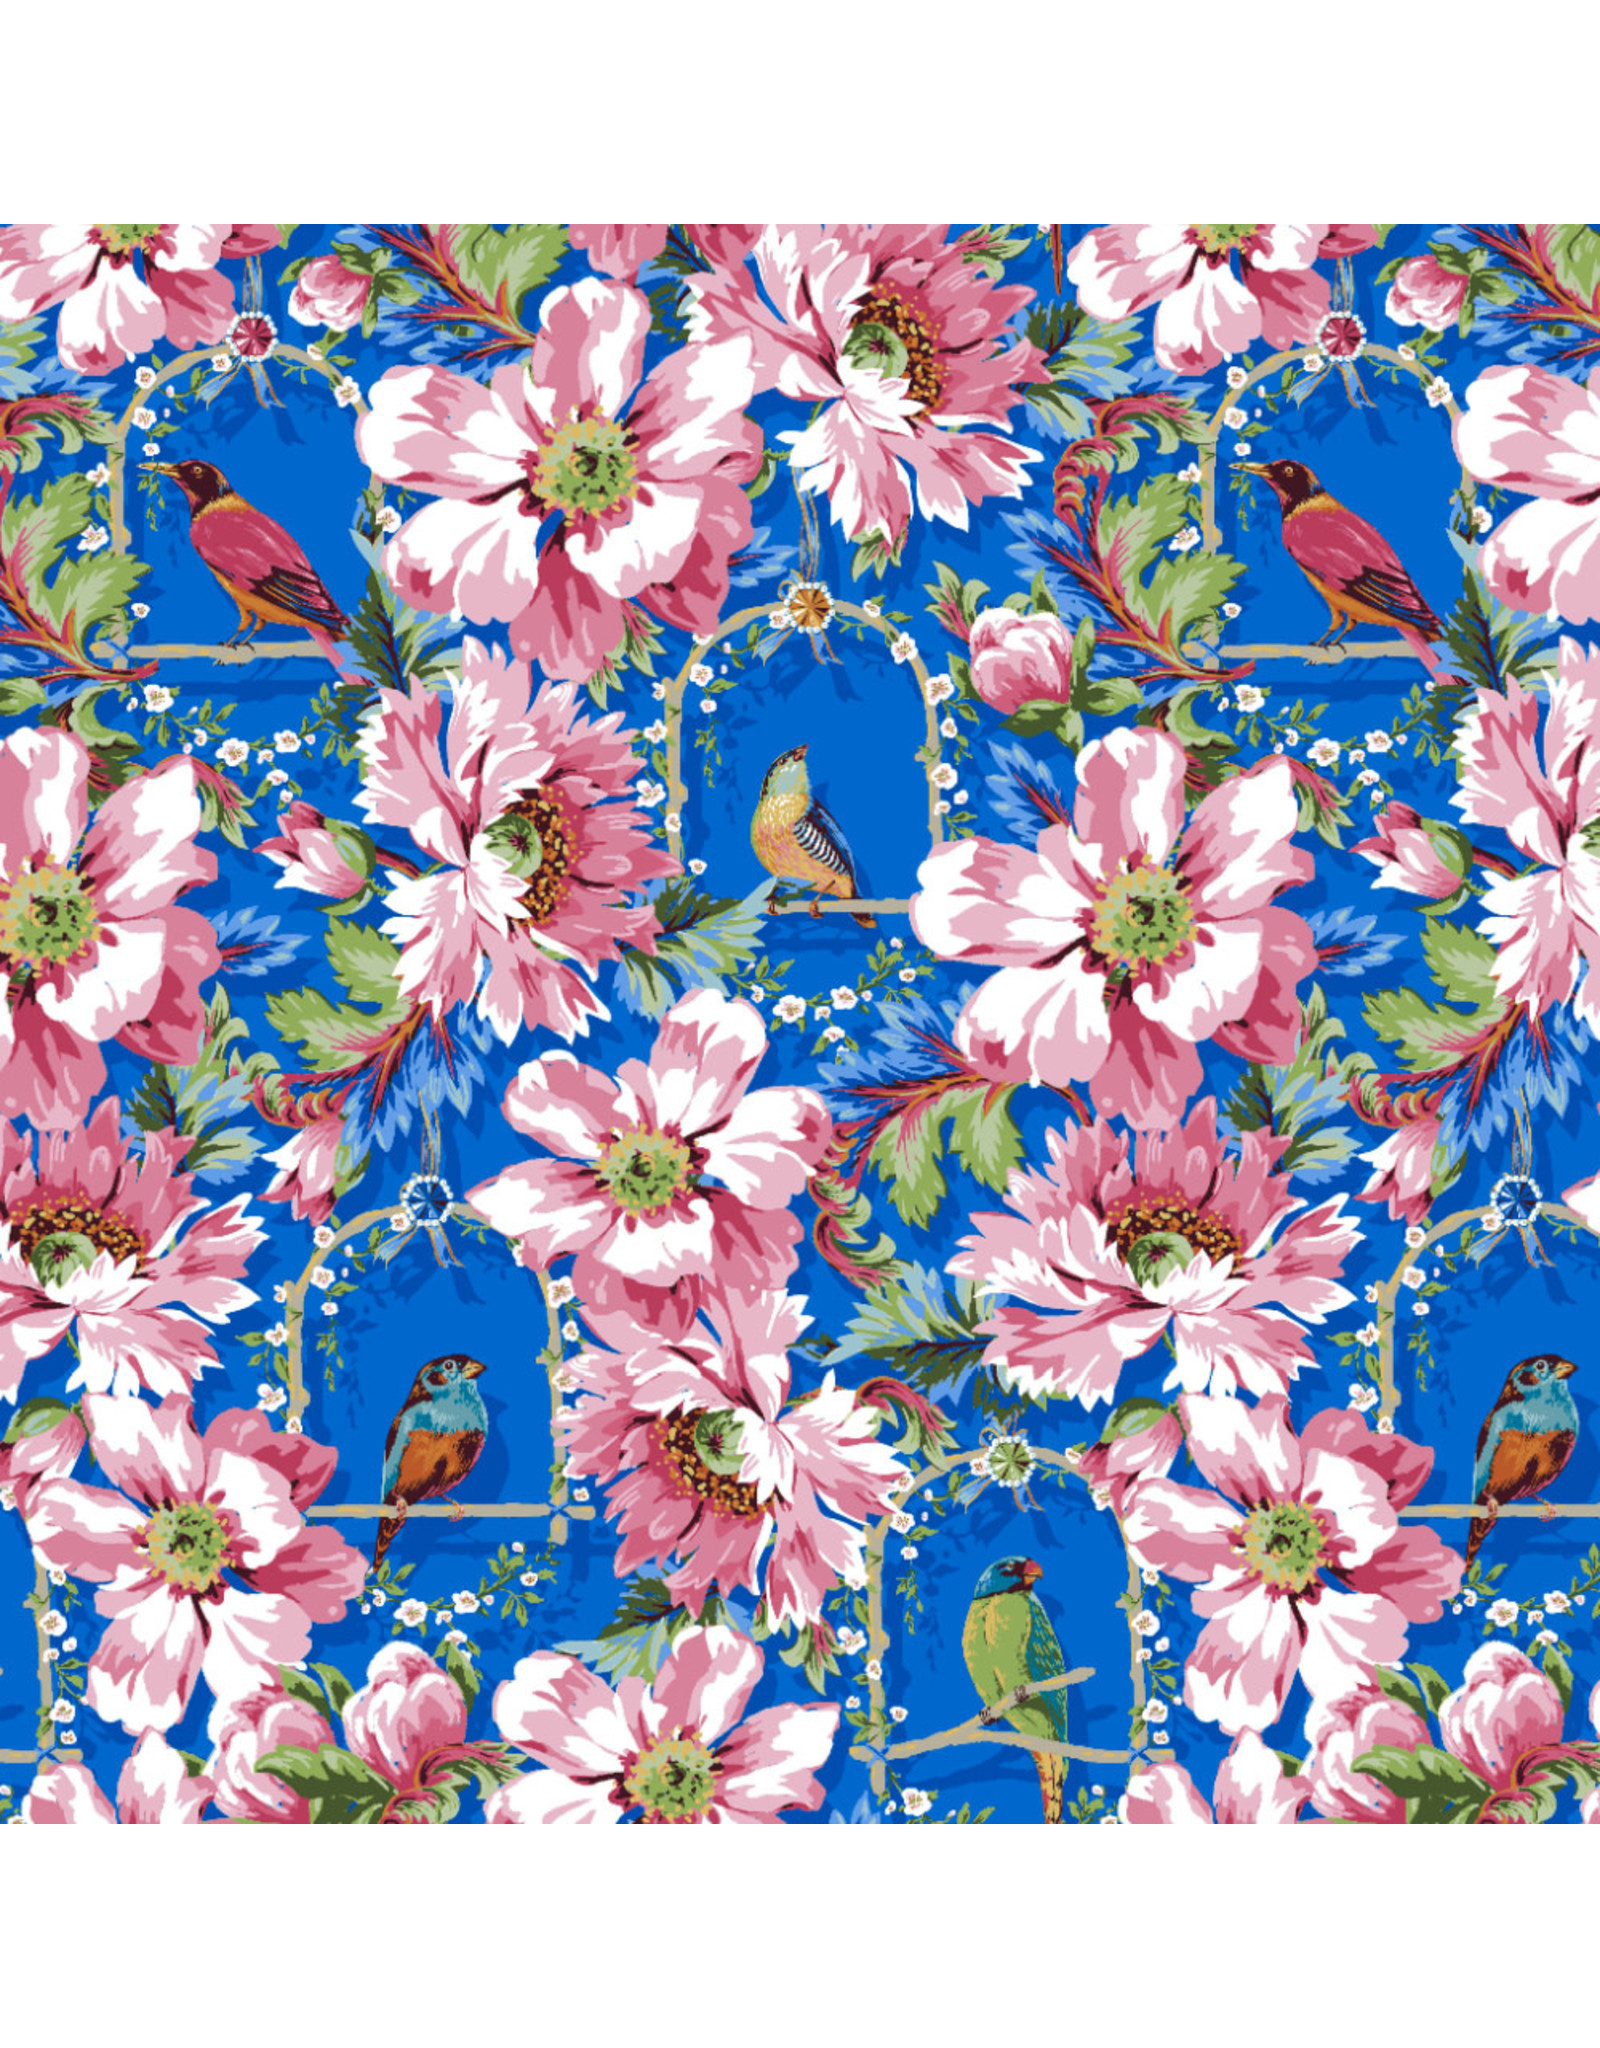 Odile Bailloeul Jardin de la Reine, The Queen's Musicians Small in Royal, Fabric Half-Yards